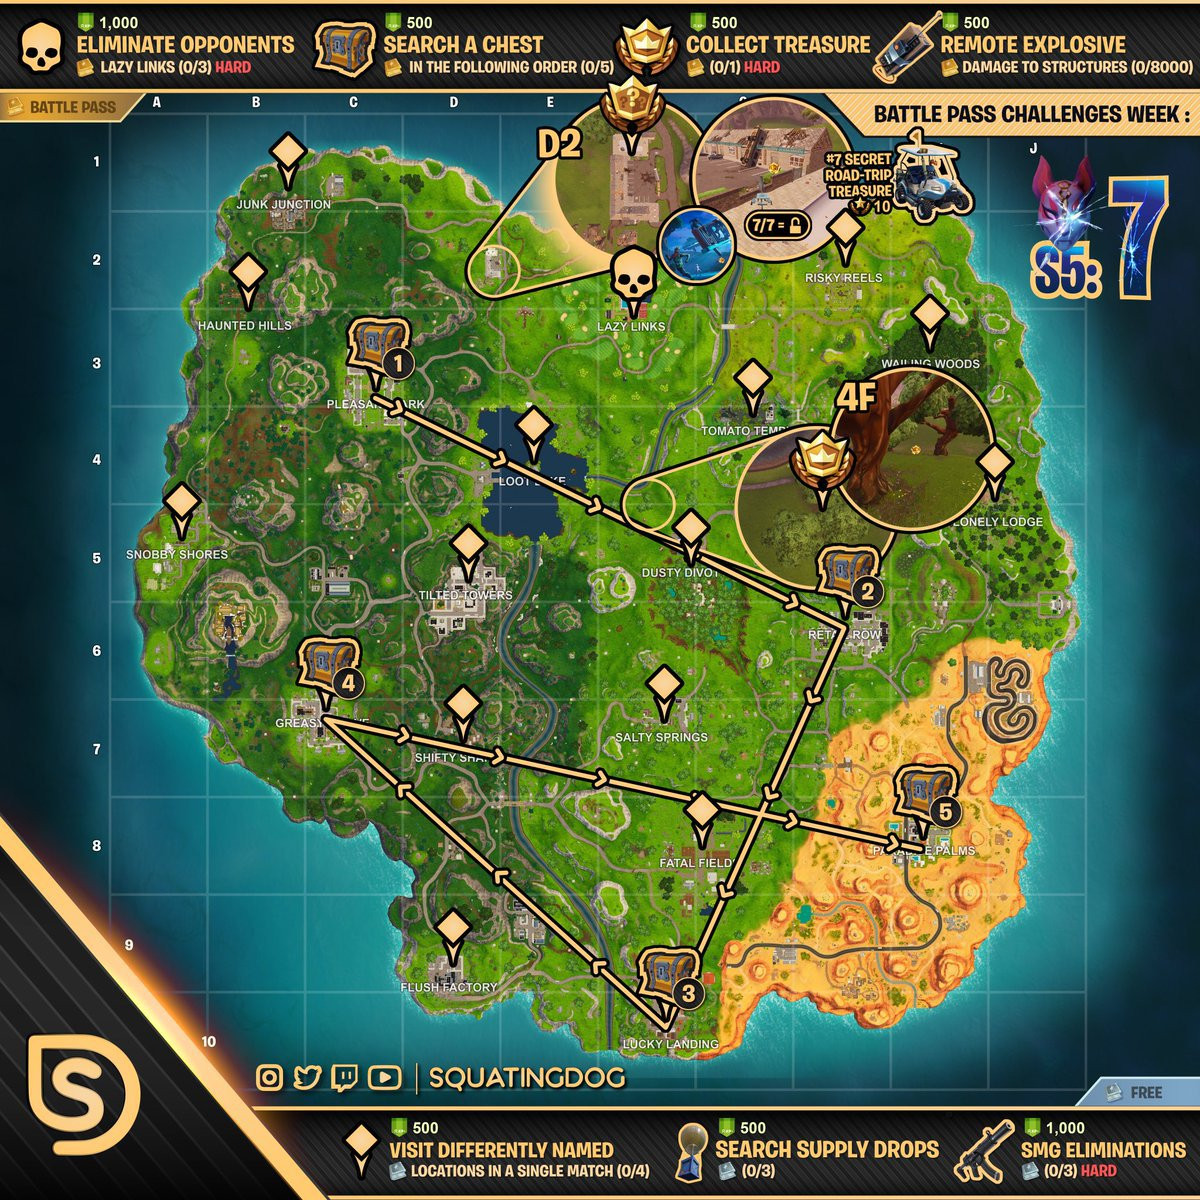 Treasure Map Stock s Vectors Shutterstock aged treasure map with pass background fortnite chest locations map season HD Wallpaper For